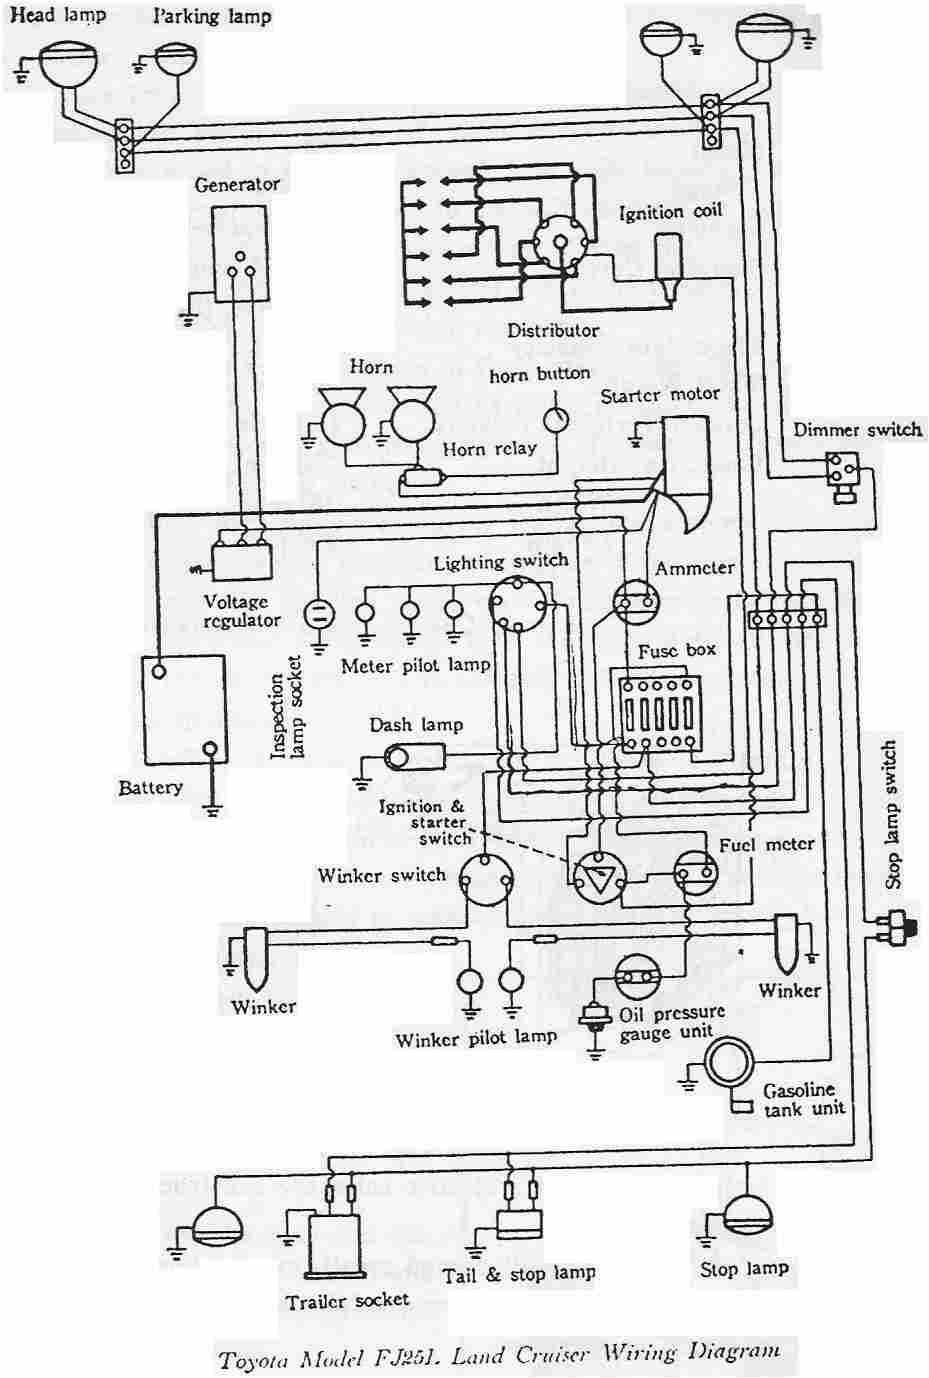 electrical wiring diagram of toyota land cruiser fj25